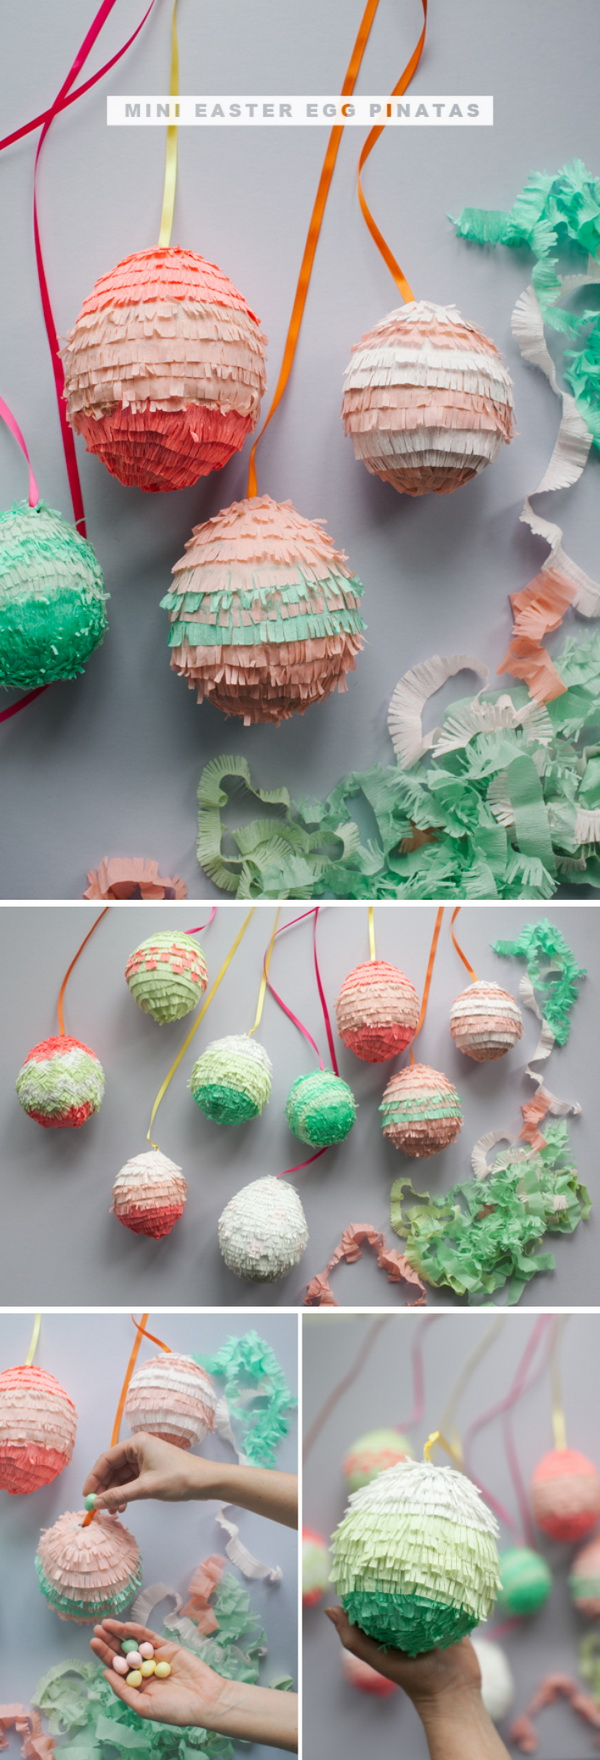 DIY Easter Decoration Ideas: DIY Mini Easter Egg Pinatas.